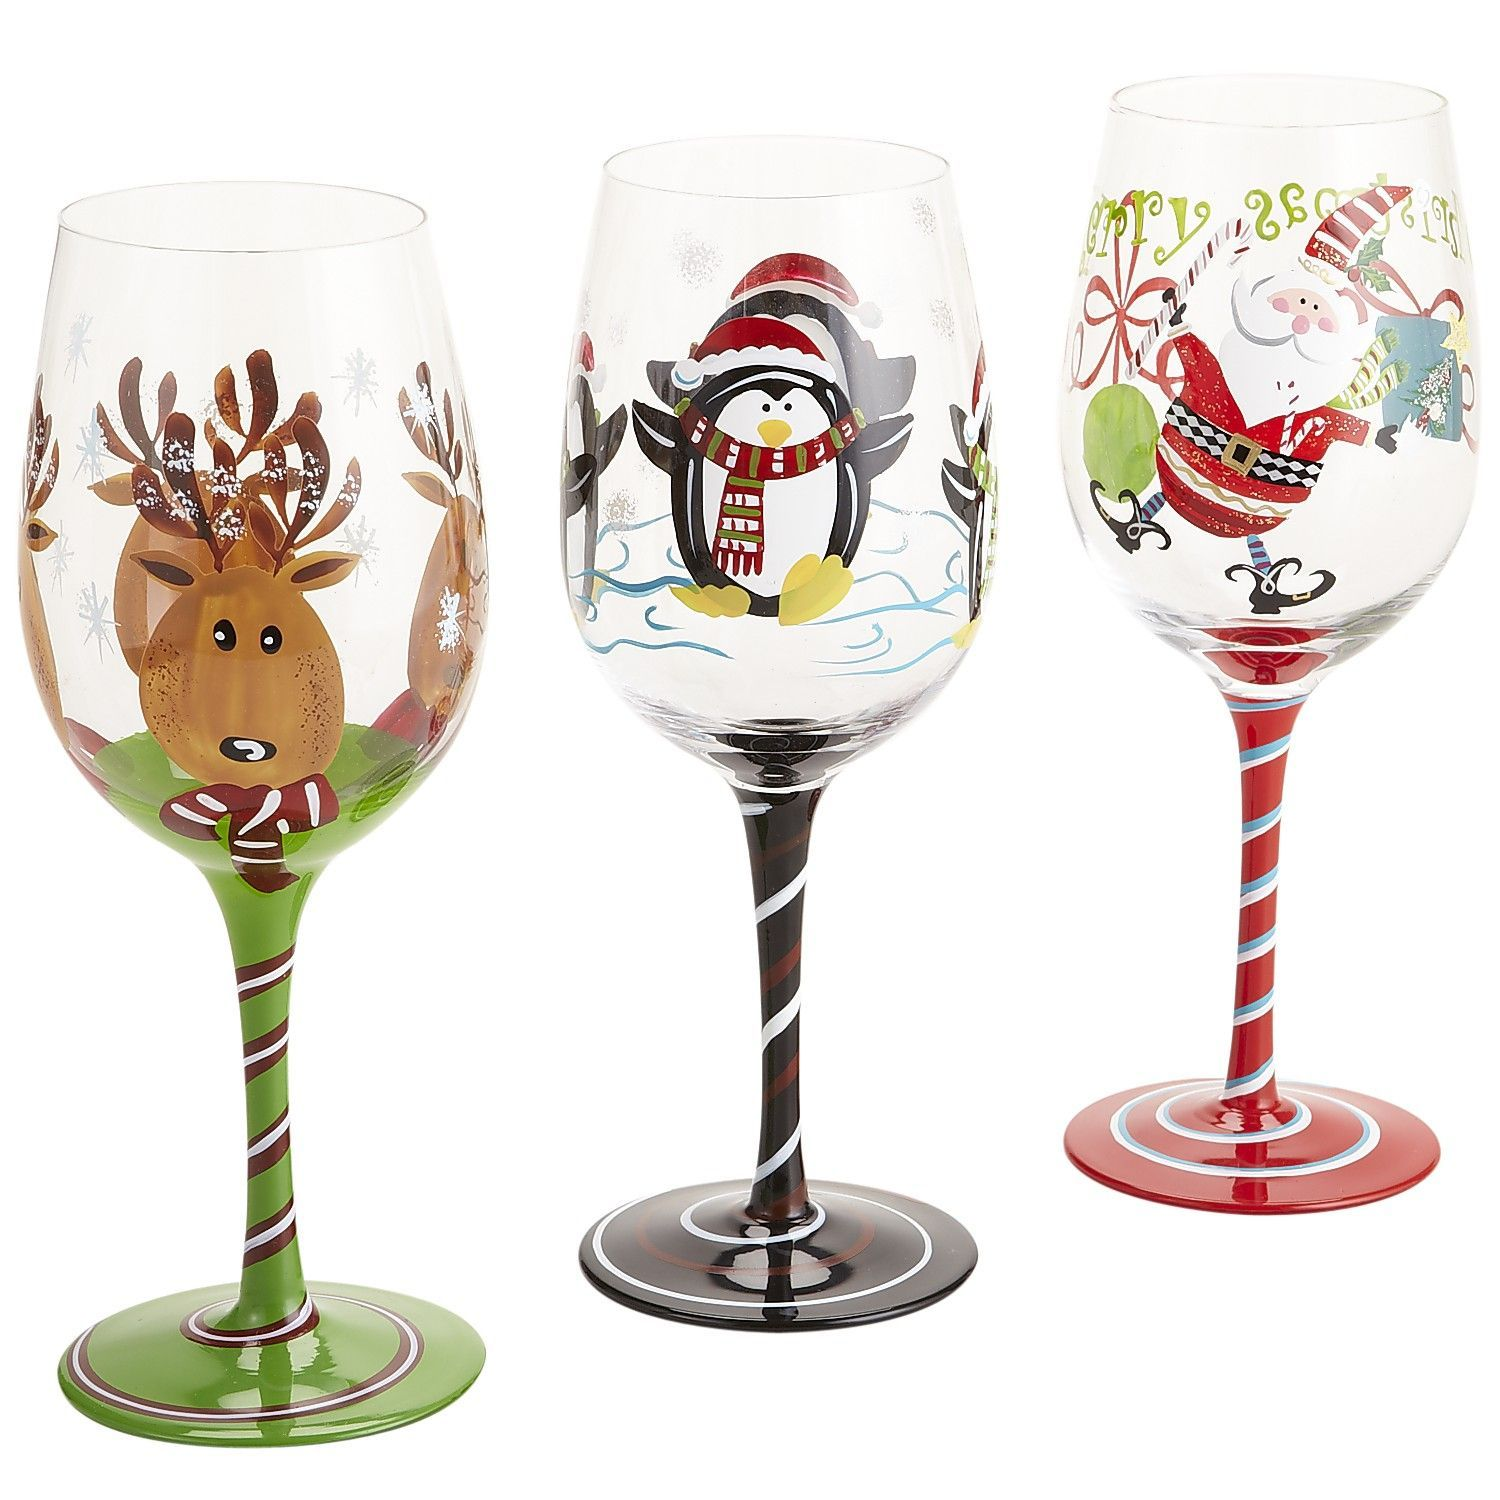 Wine Glass Design Ideas wine glass design ideas 1000 images about wine glasses on pinterest painted wine wine glass 1000 Images About Christmas On Pinterest Christmas Wine Glasses Wine Glass And Lighted Wine Bottles